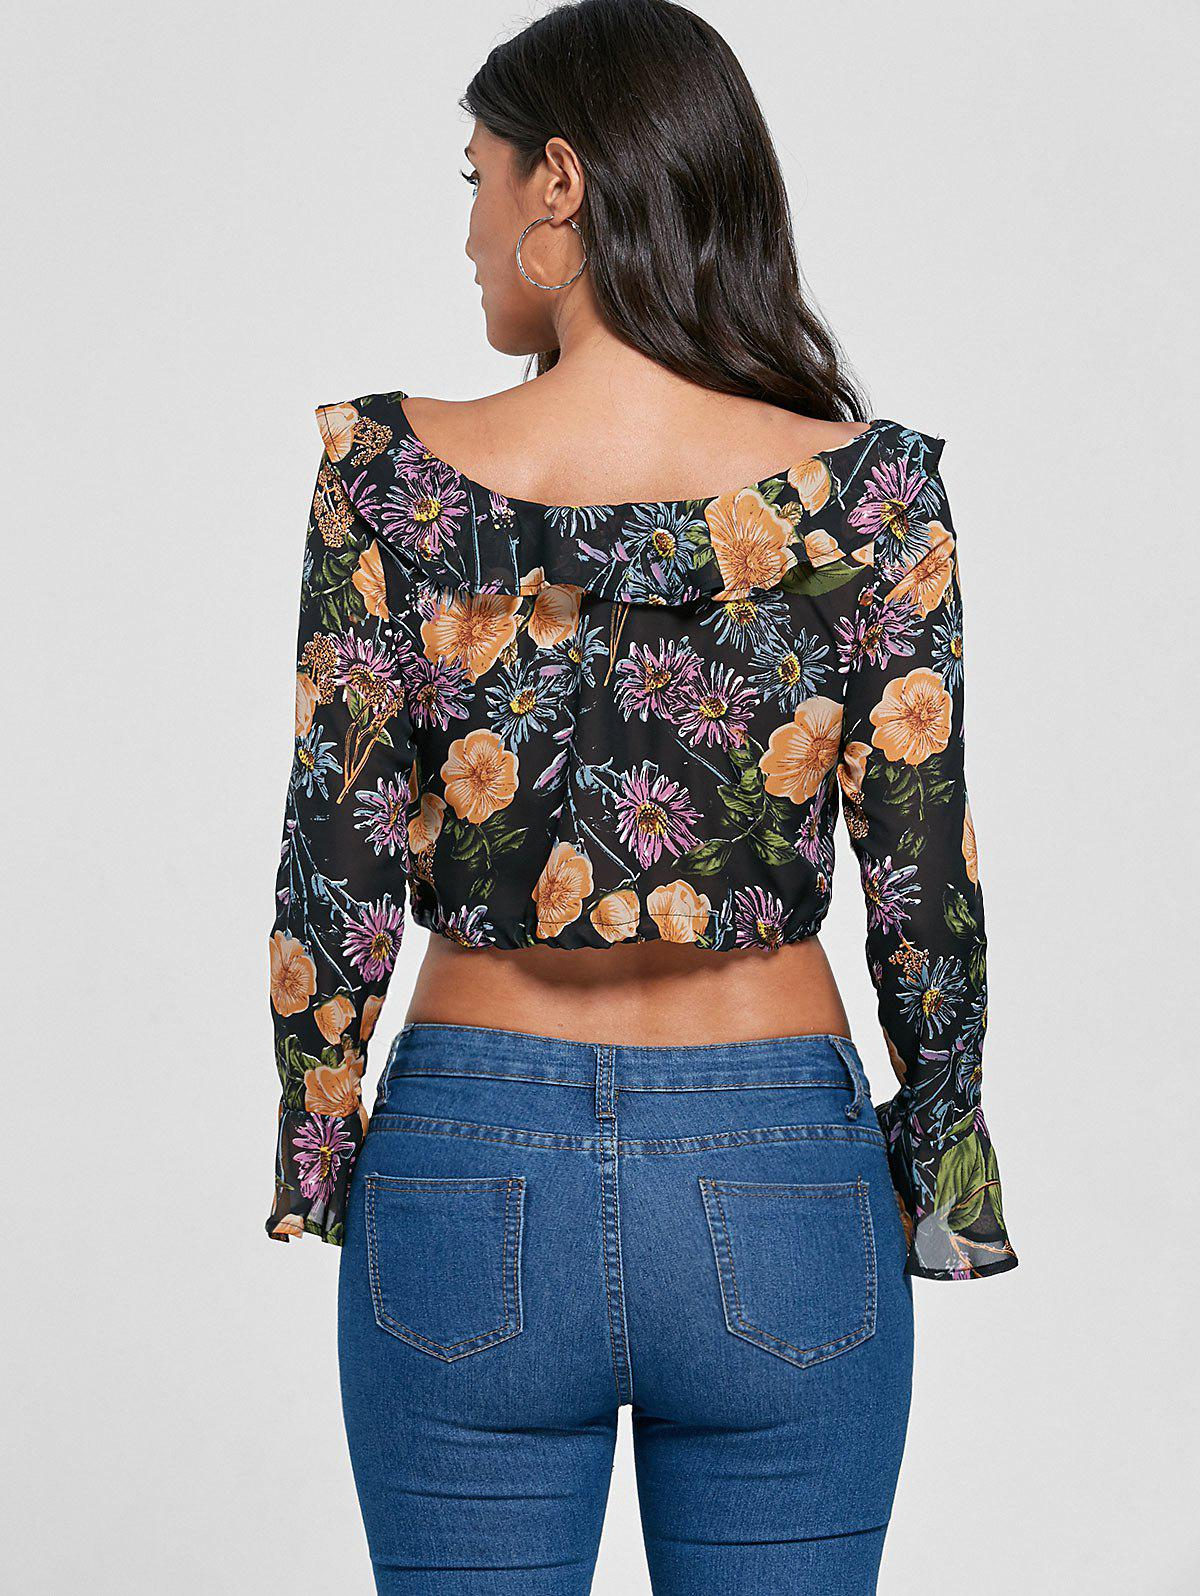 Flare Sleeve Flounce Floral Crop Top - FLORAL S